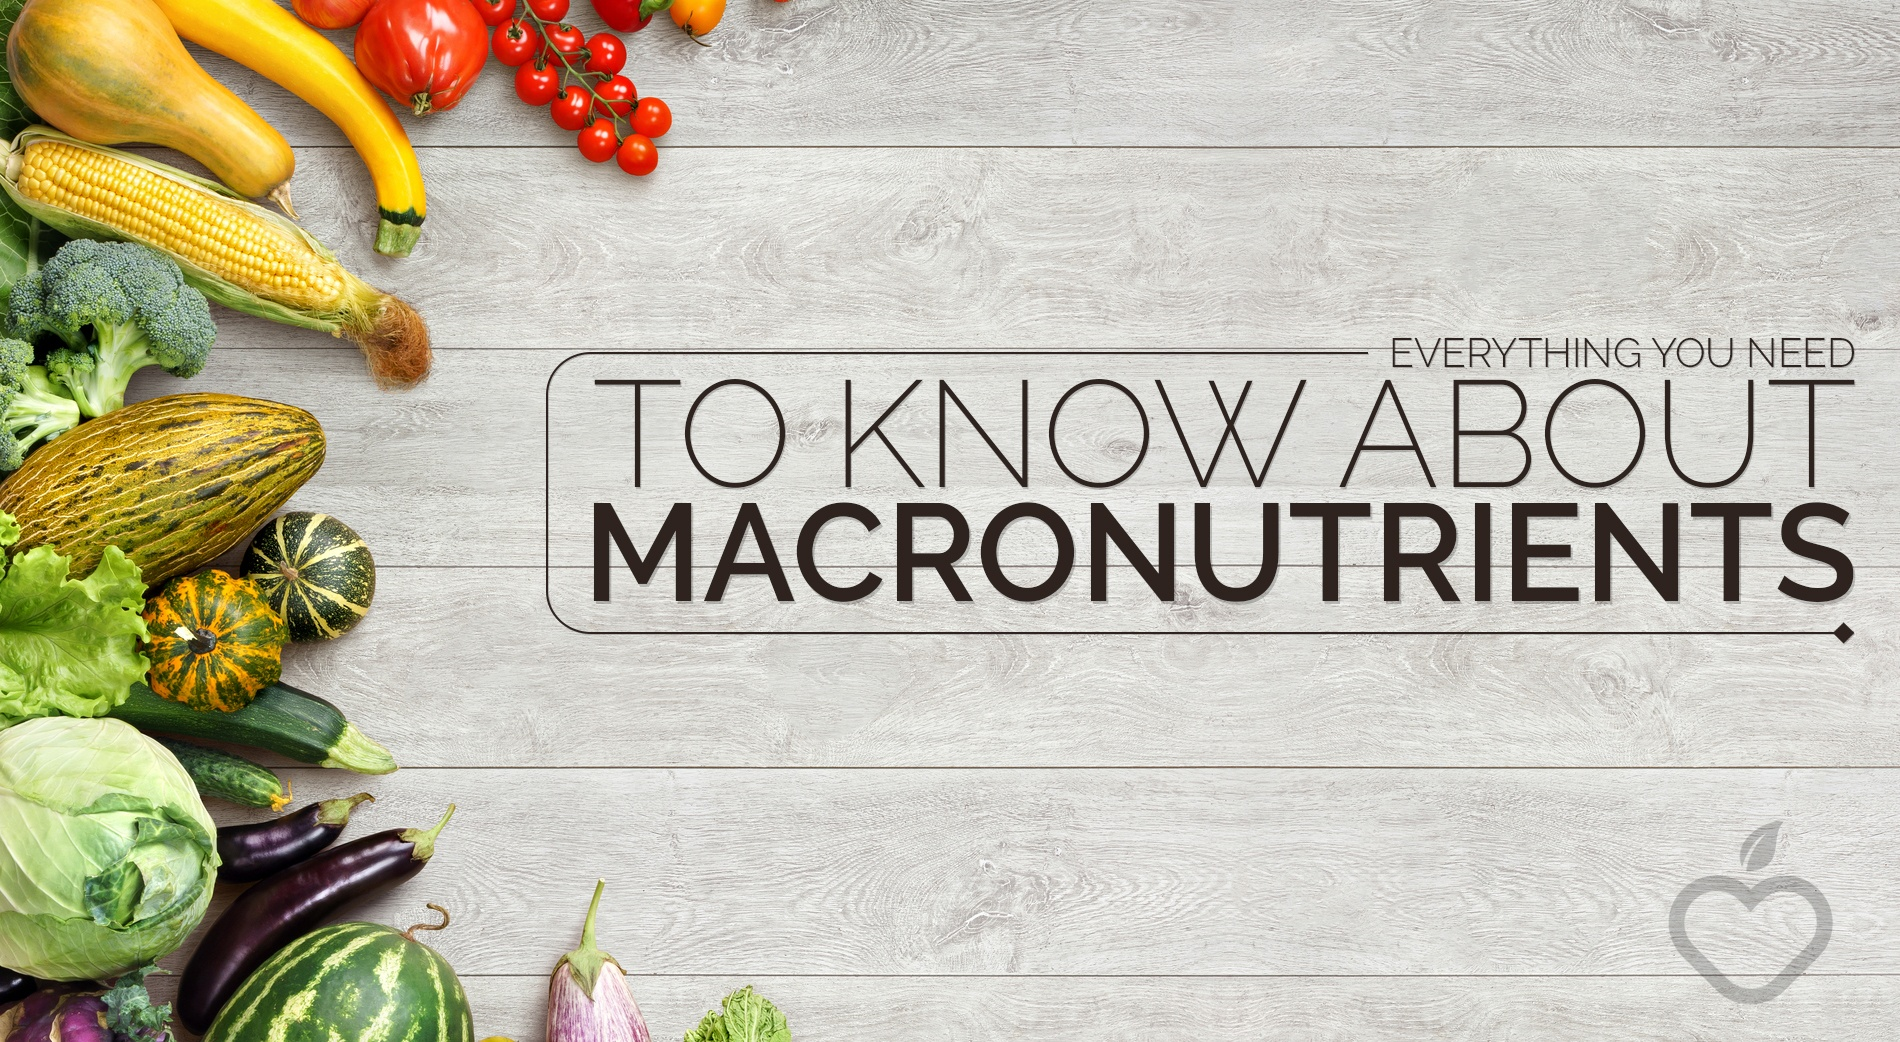 Macronutrients Image Design 1 - Everything You Need To Know About Macronutrients